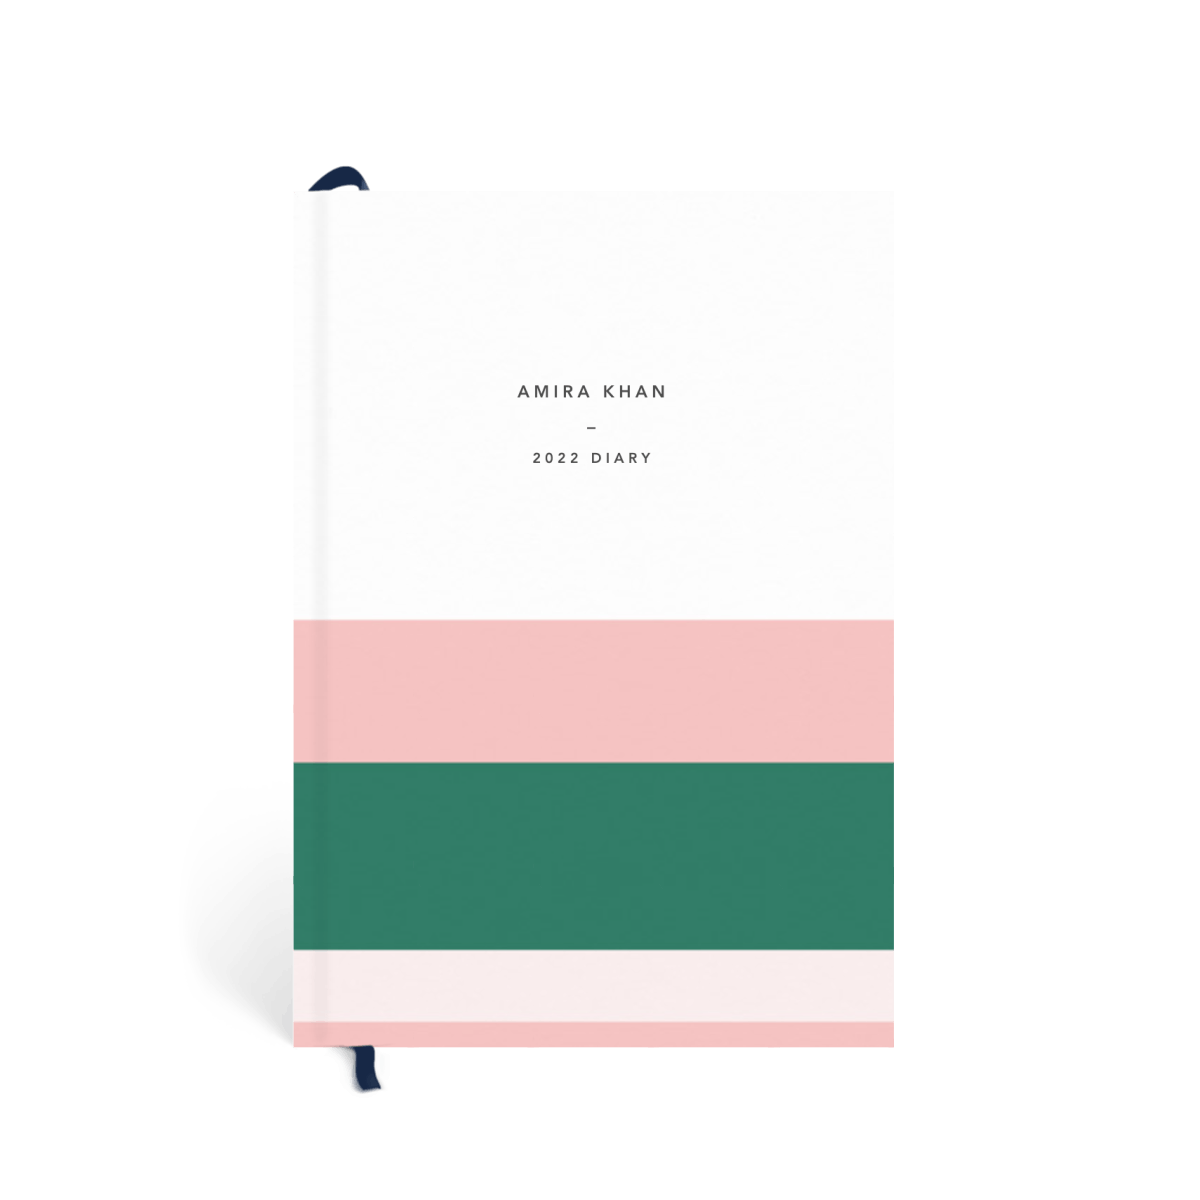 Https%3a%2f%2fwww.papier.com%2fproduct image%2f90151%2f36%2fstriped colourblock pink green 22548 front 1569936123.png?ixlib=rb 1.1